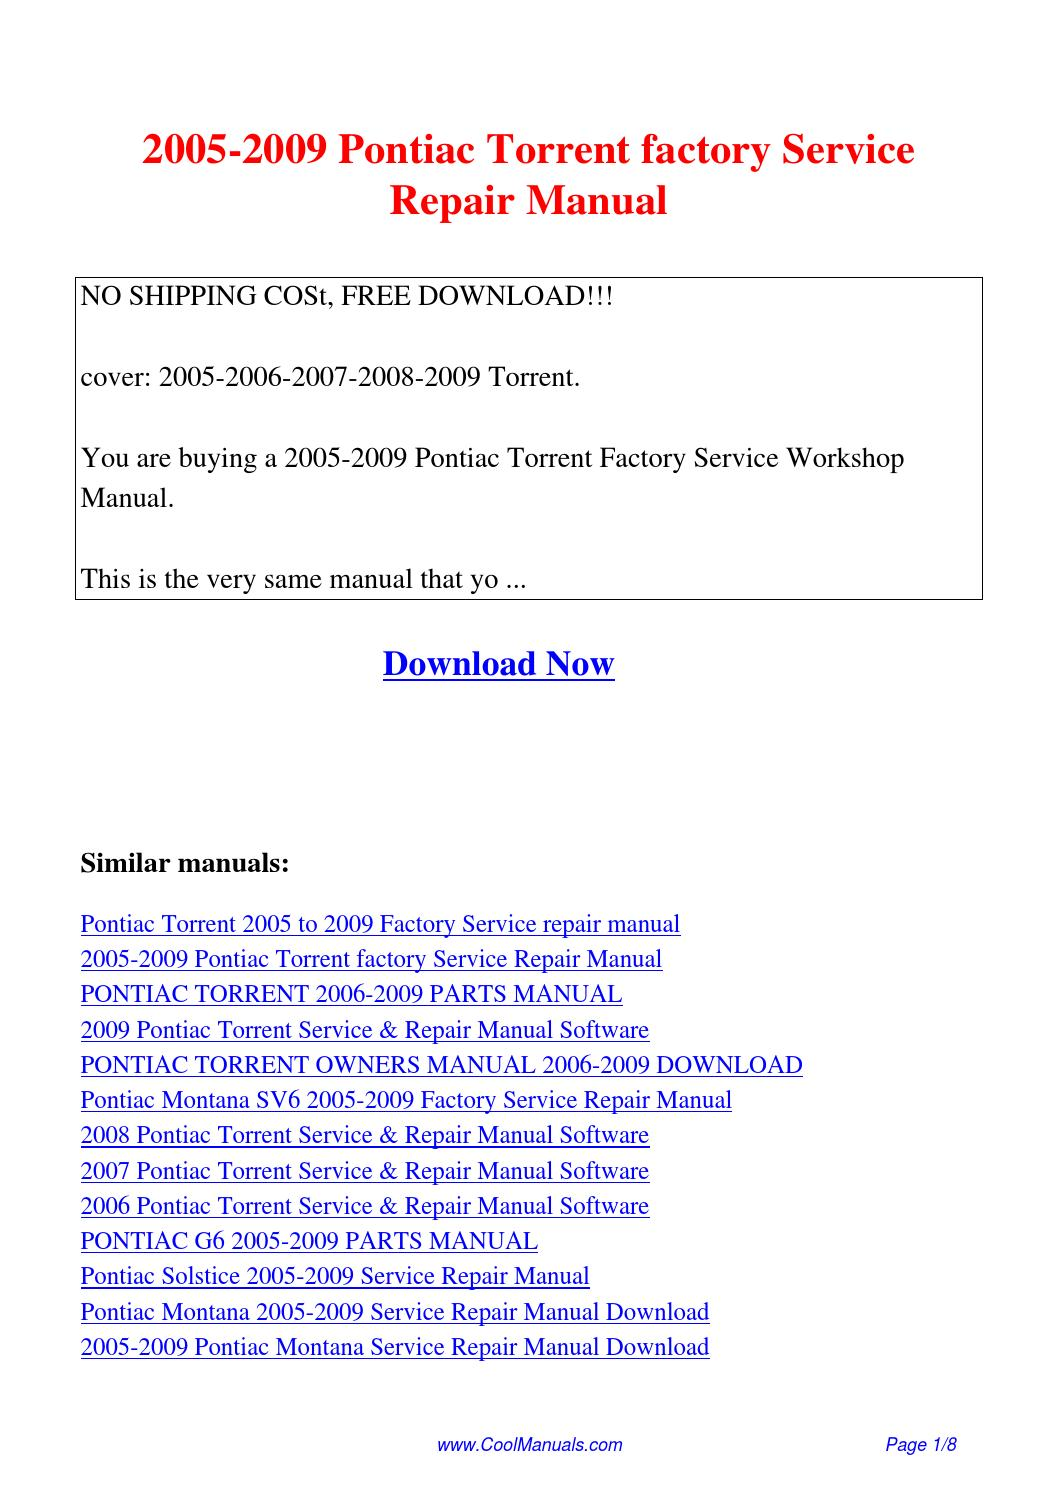 Gmc sierra factory service manual 92 torrent.